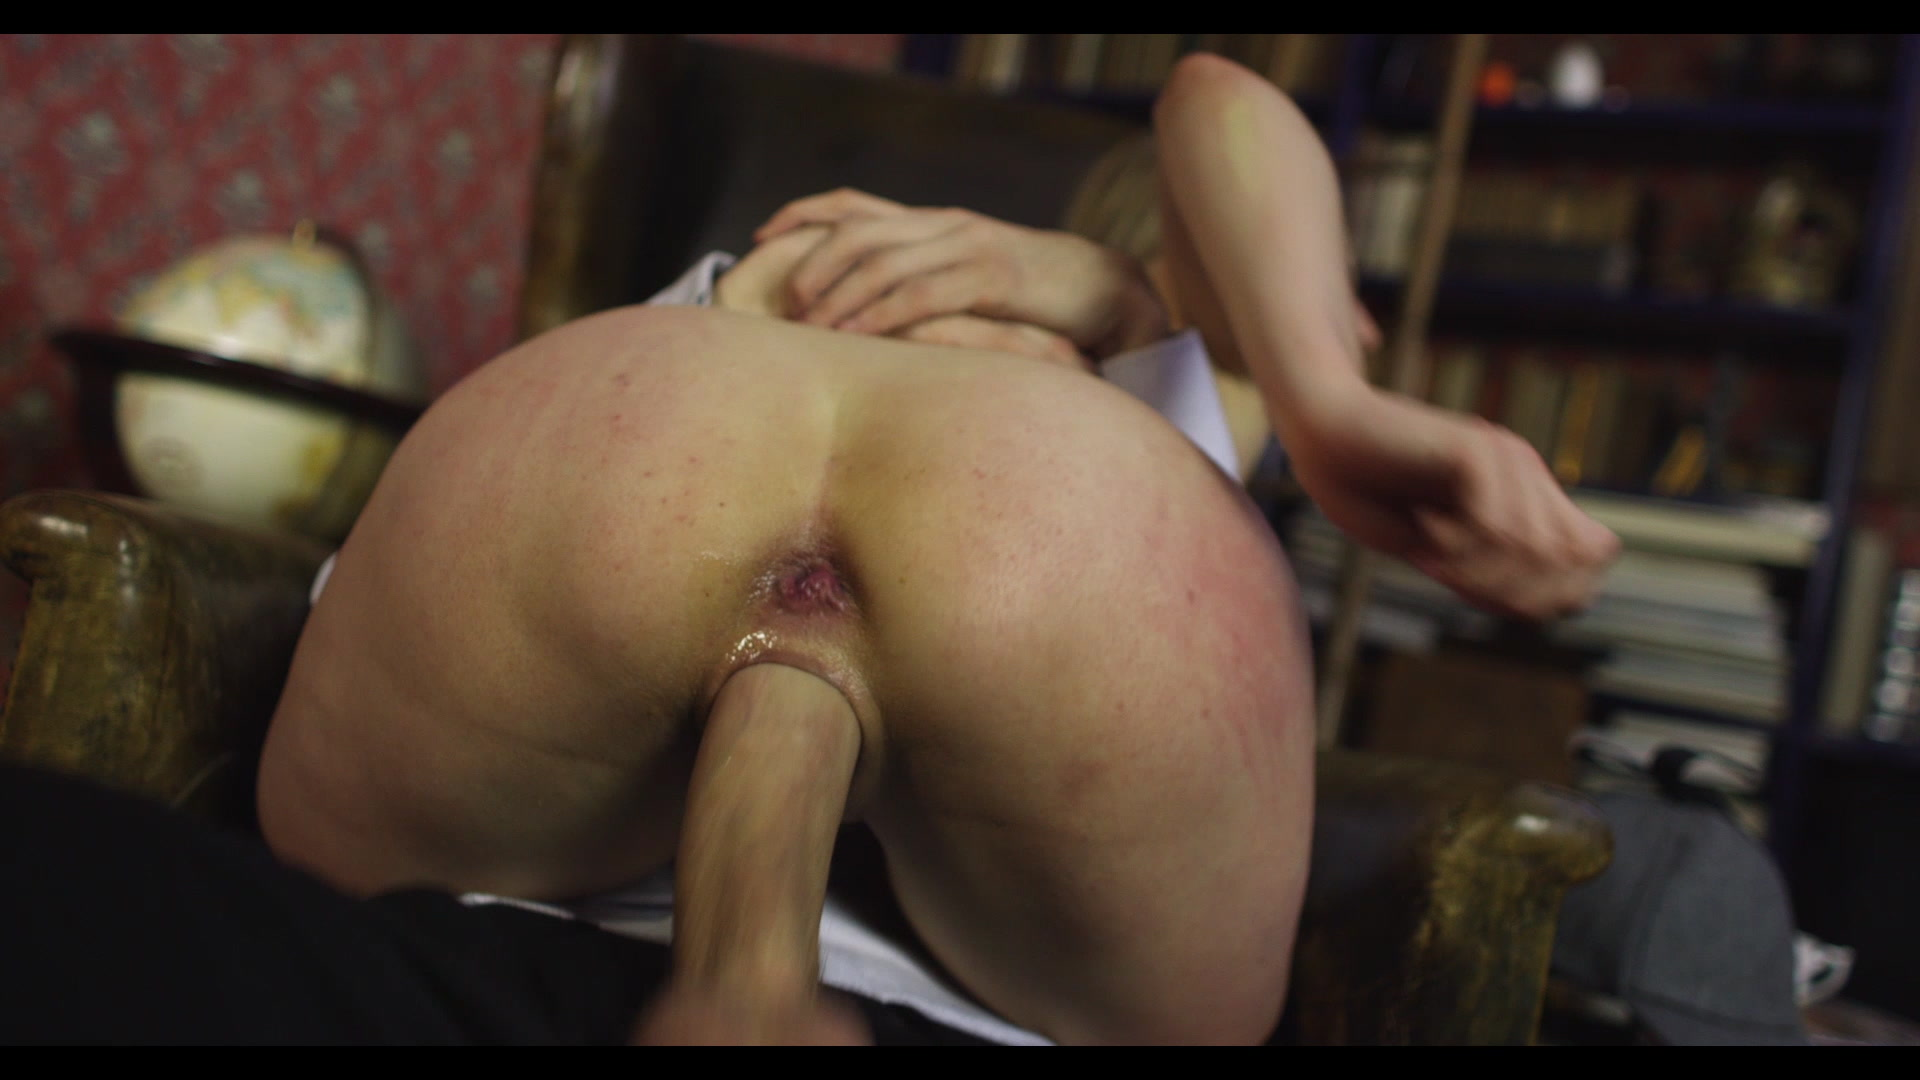 Scene with Stella Cox - image 19 out of 20